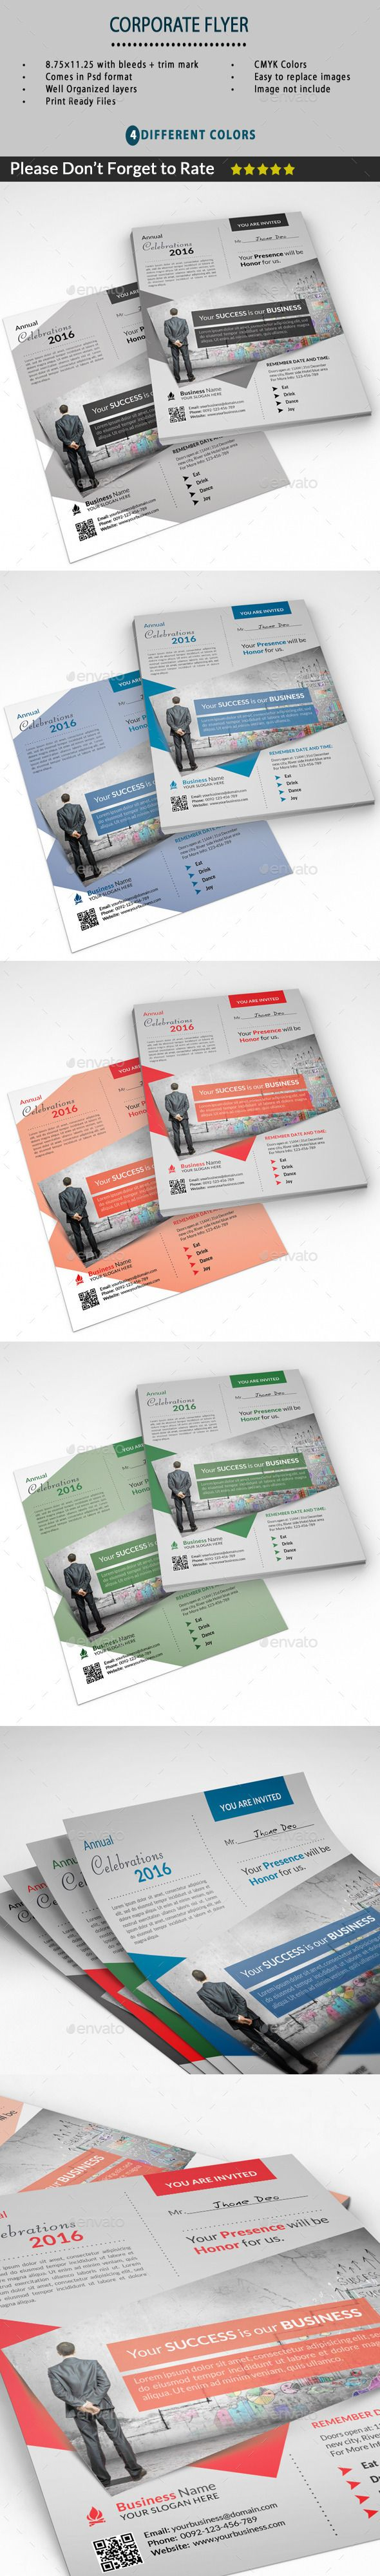 This Great Flyer Template is for Business Companies. This template can also be used for a magazine advertisement or used as an online flyer as a PDF file. FLYER DETAILS Fully Editable Files 8.511 (8.7511.25 with bleeds   trim mark) 300 DPI 4 Different Colo